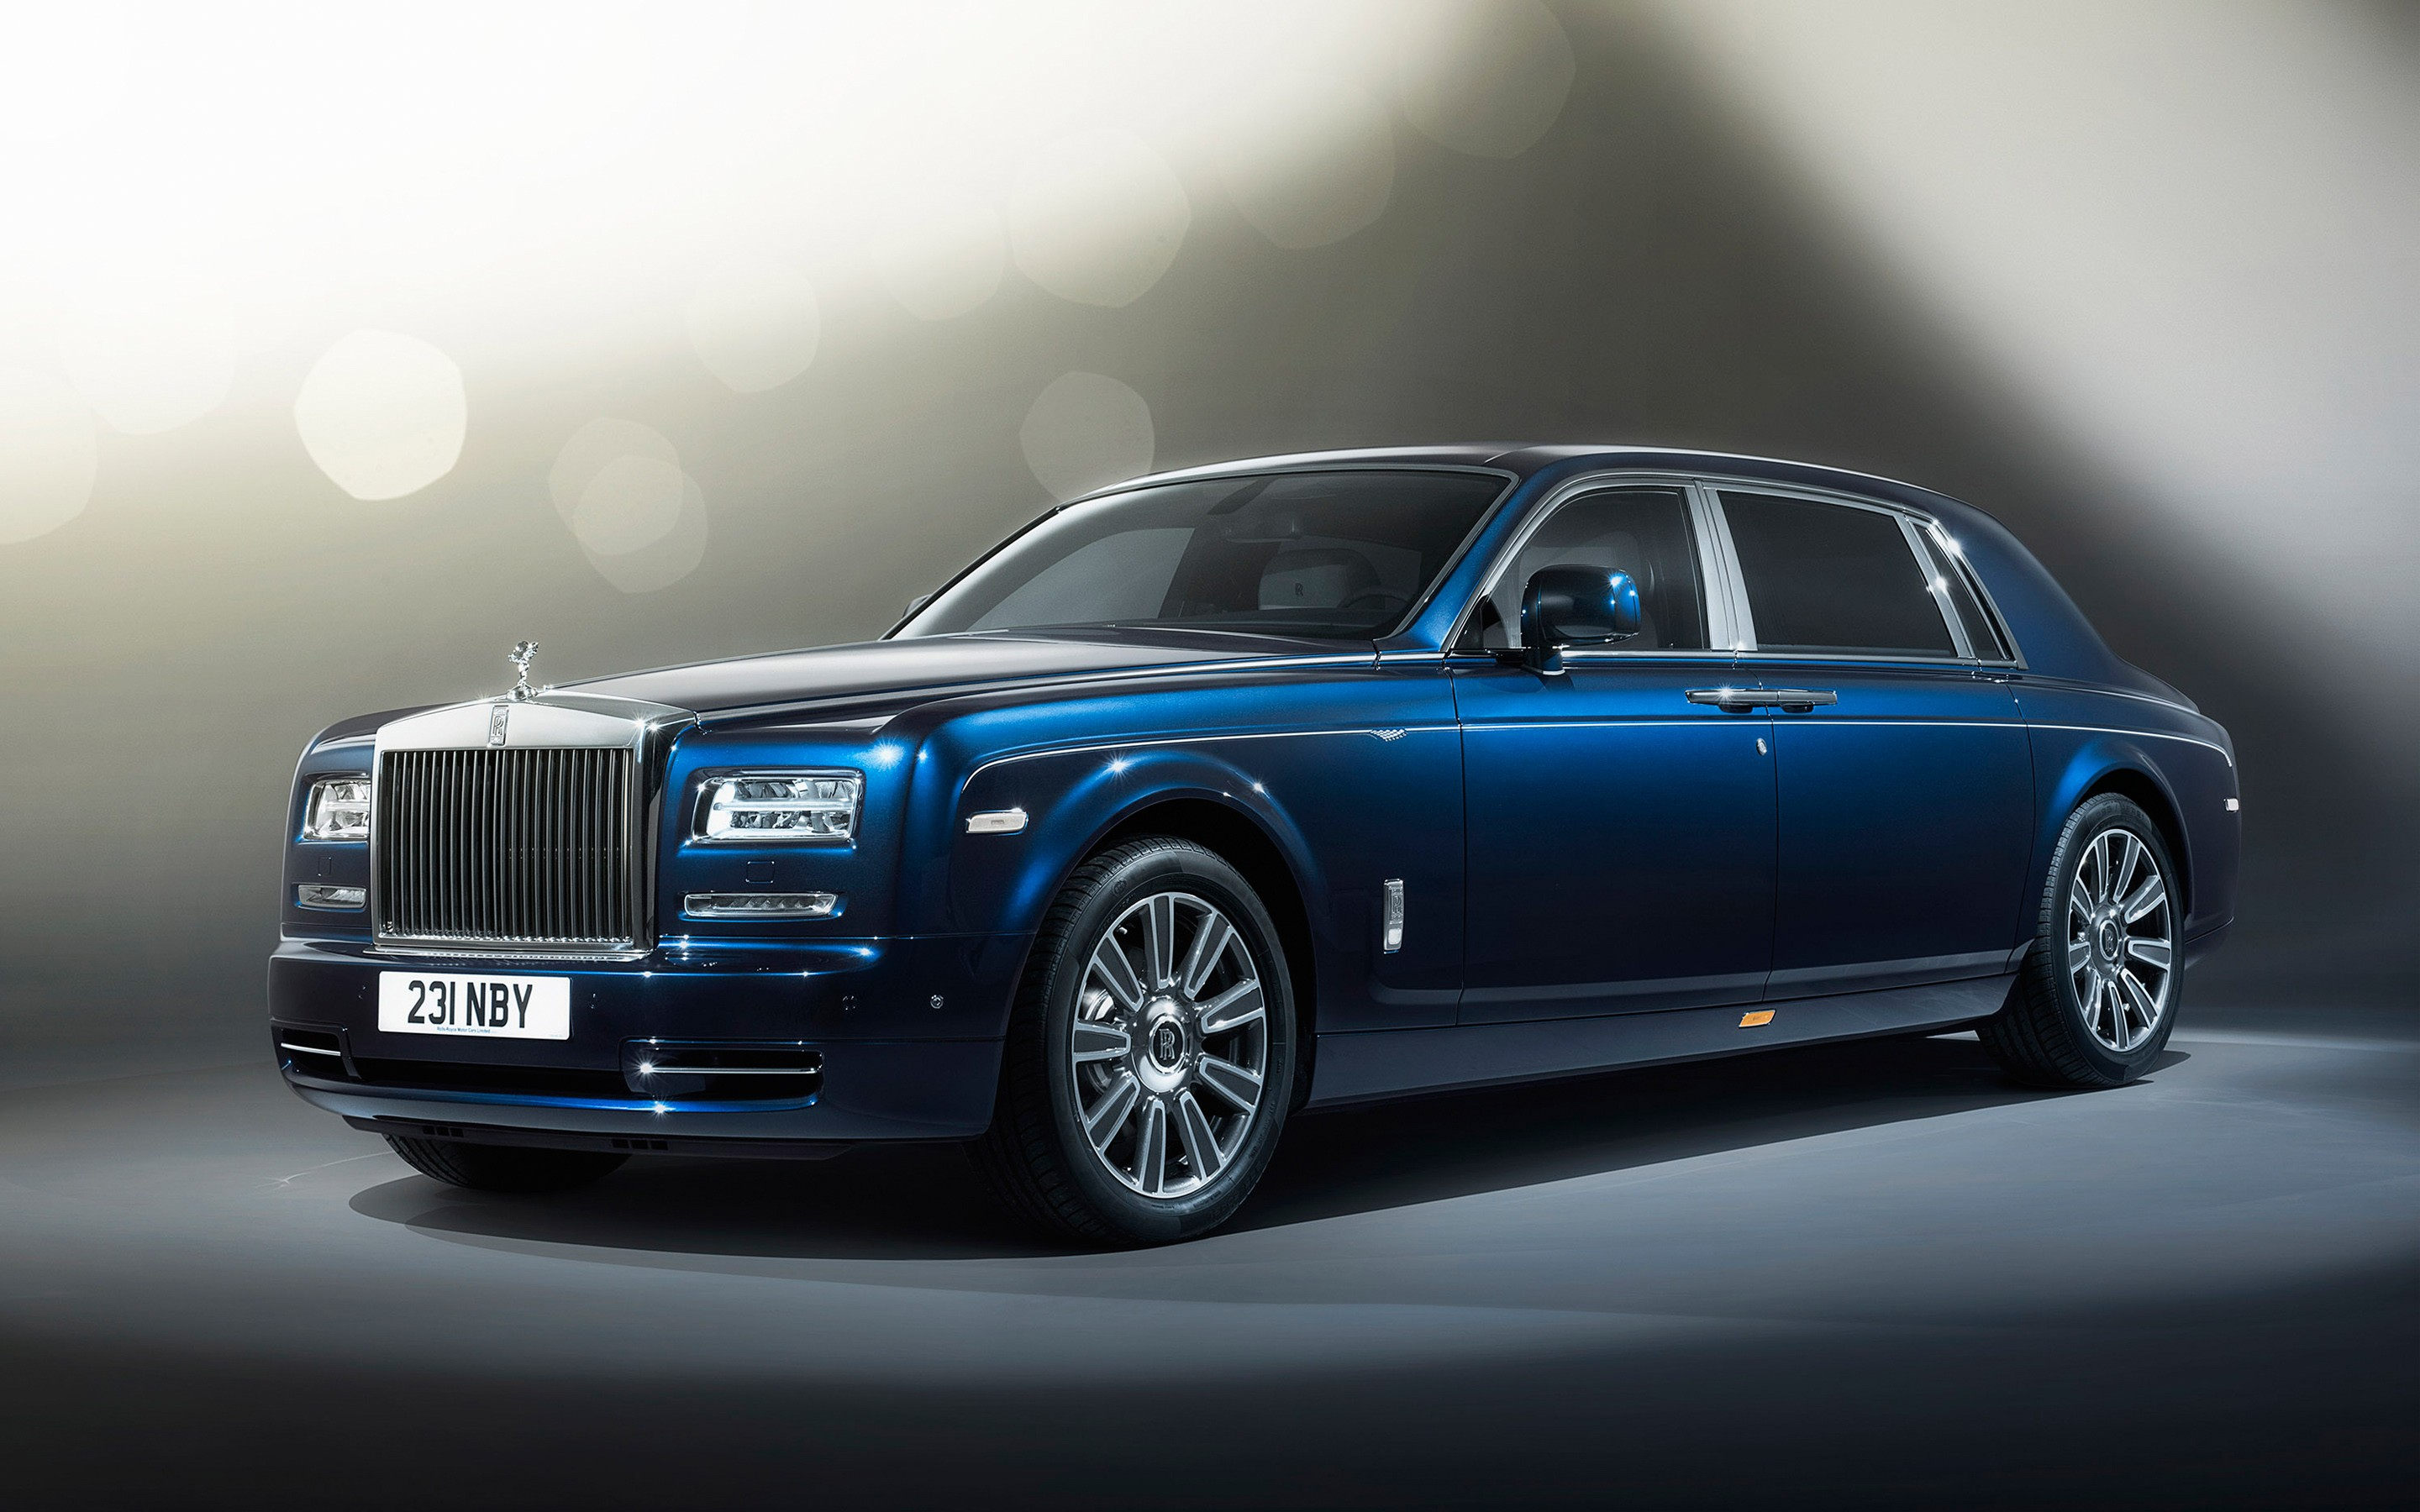 Rolls royce phanthom photo - 8